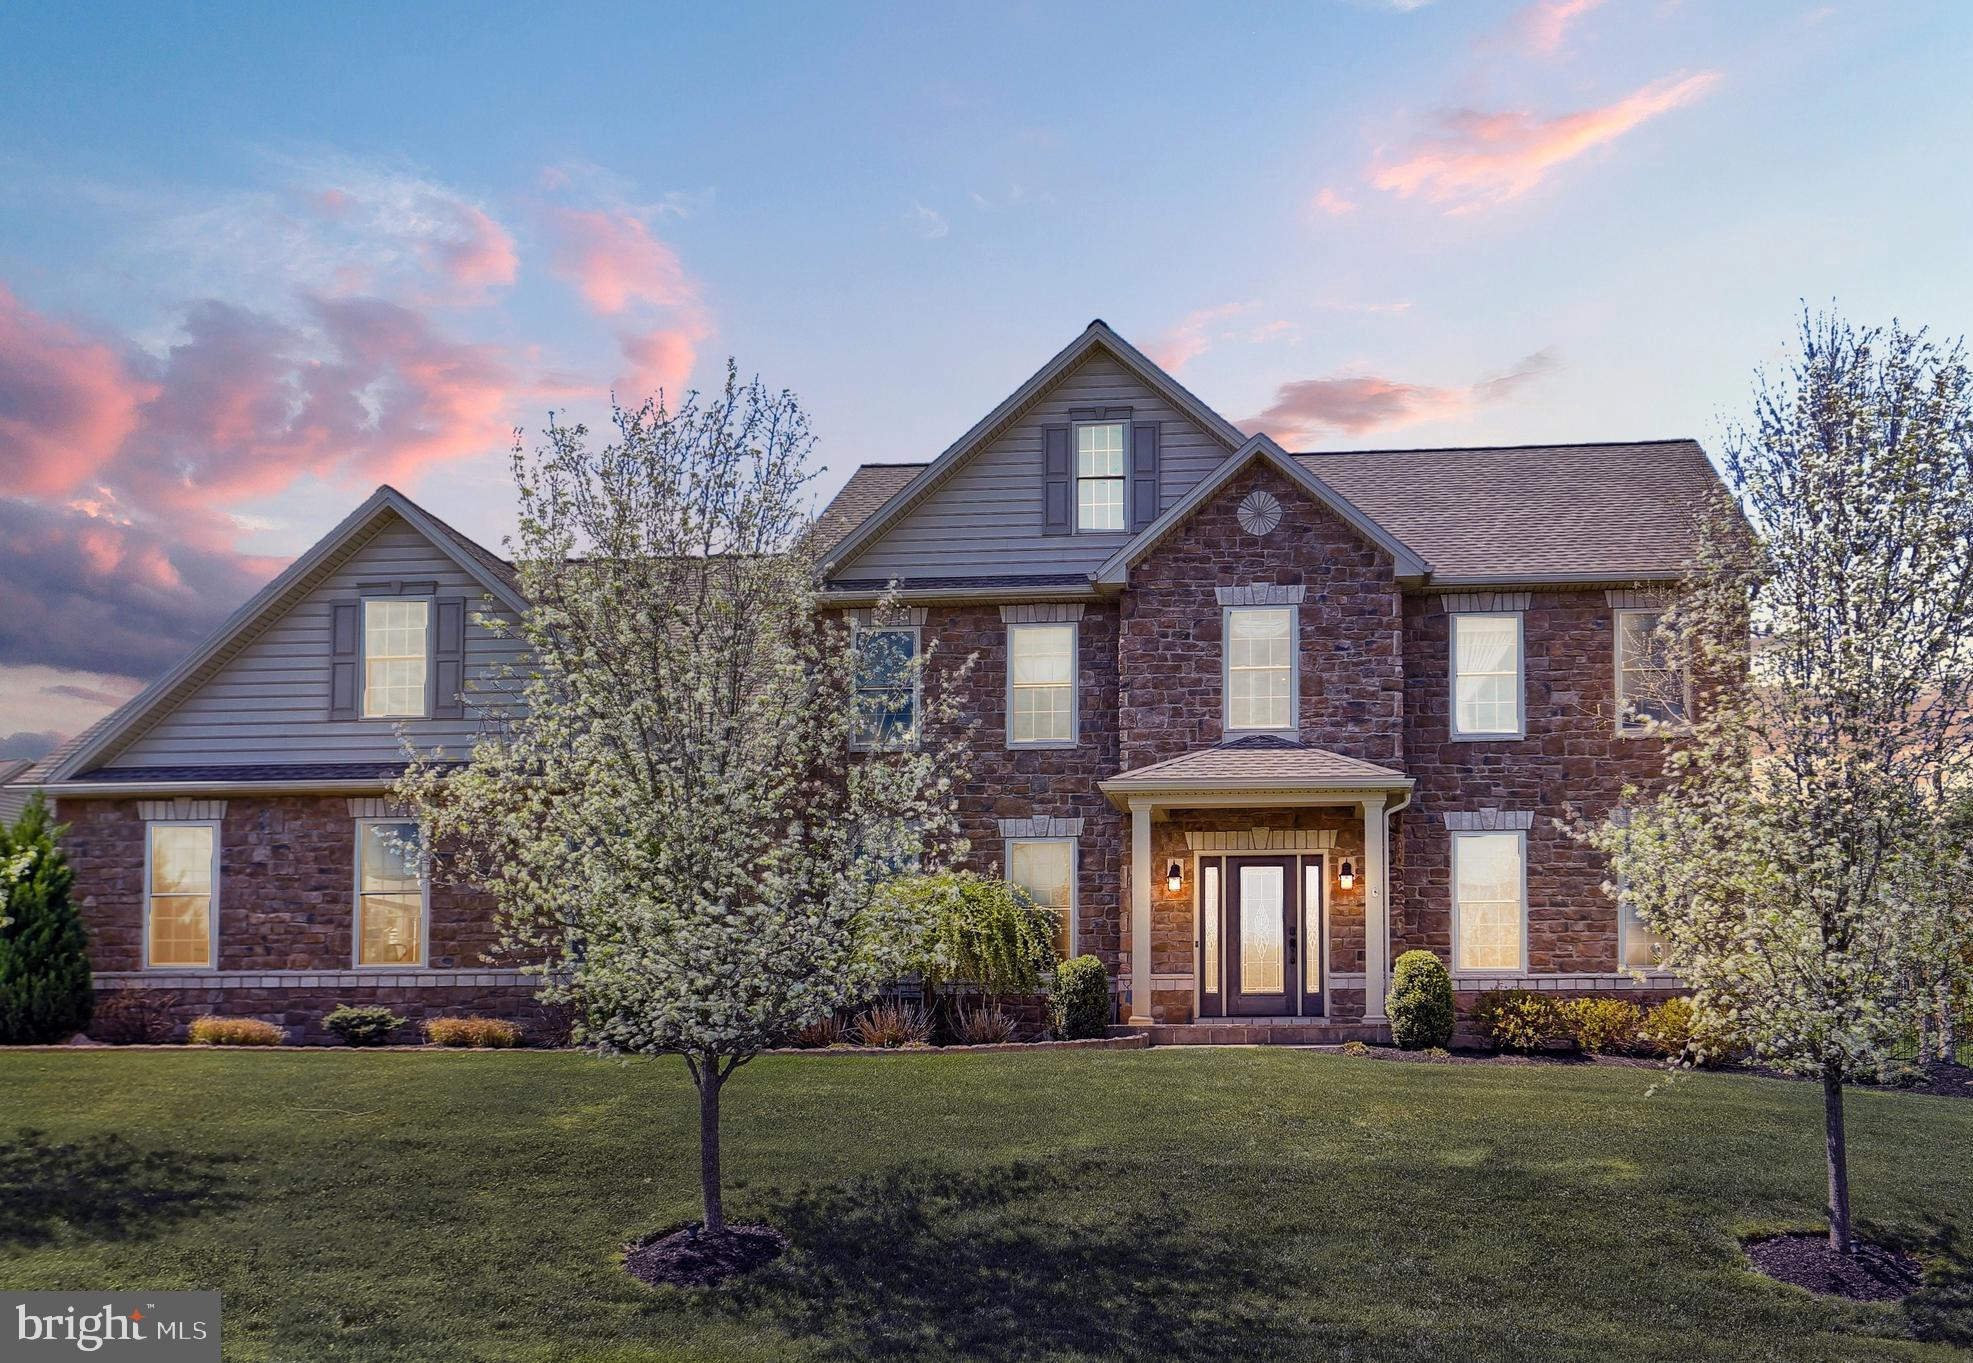 Immaculate home on PREMIUM LOT!